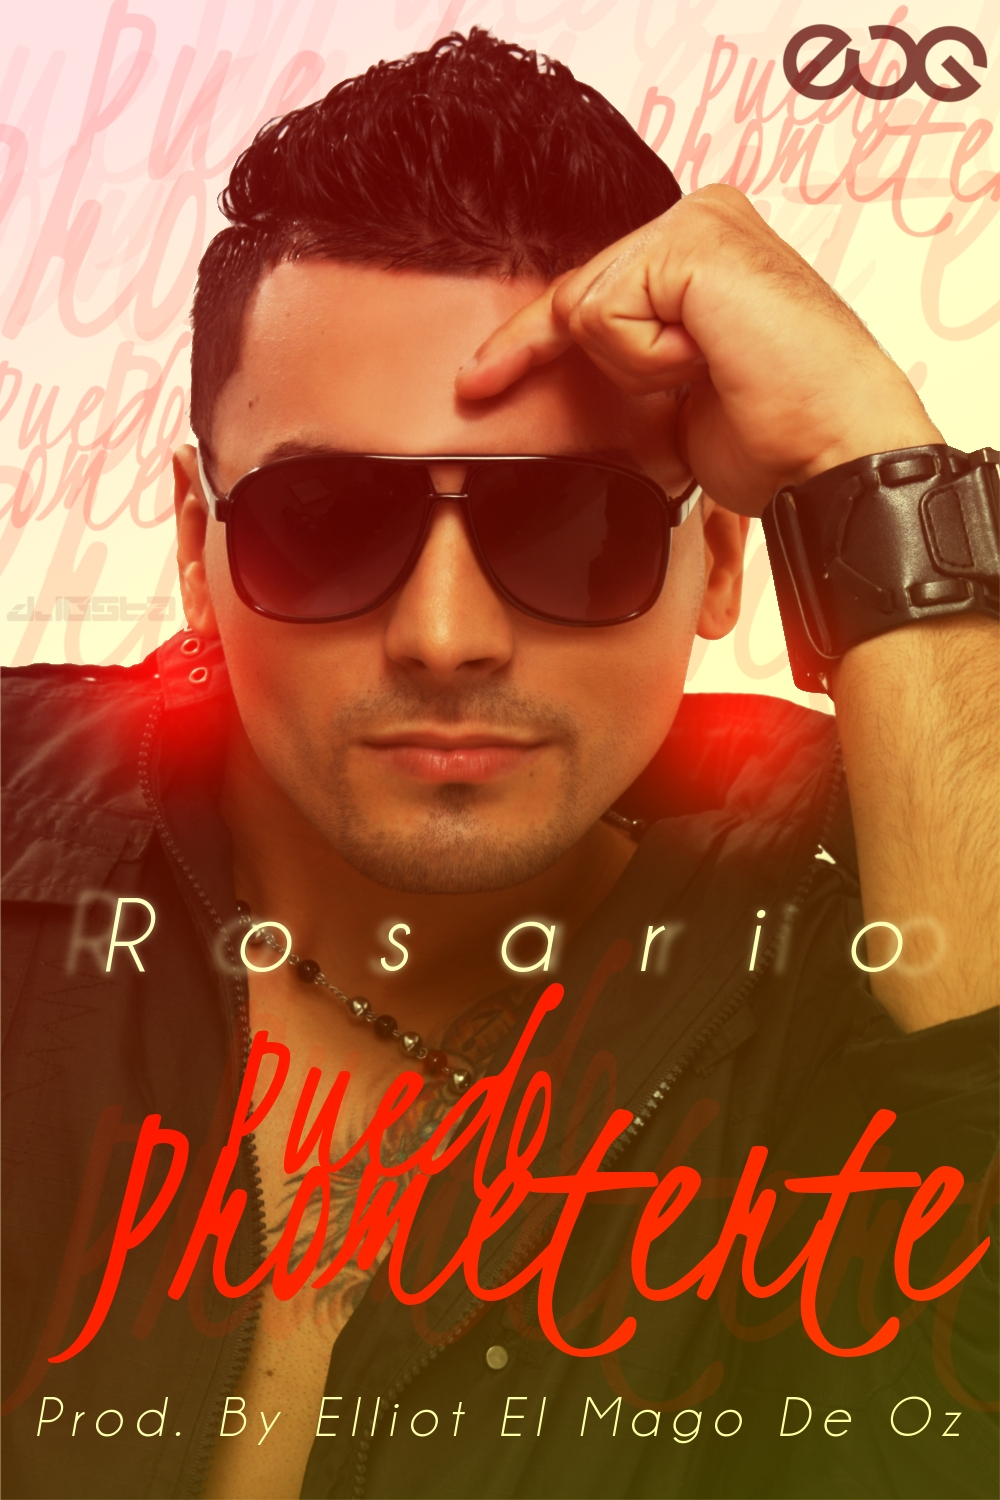 rosario latin singles Singles la gente que gasta  los hermanos rosario (en vivo) los hermanos rosario nuevecita de caja view all on spotify discovered on latin party anthems ¡qué .